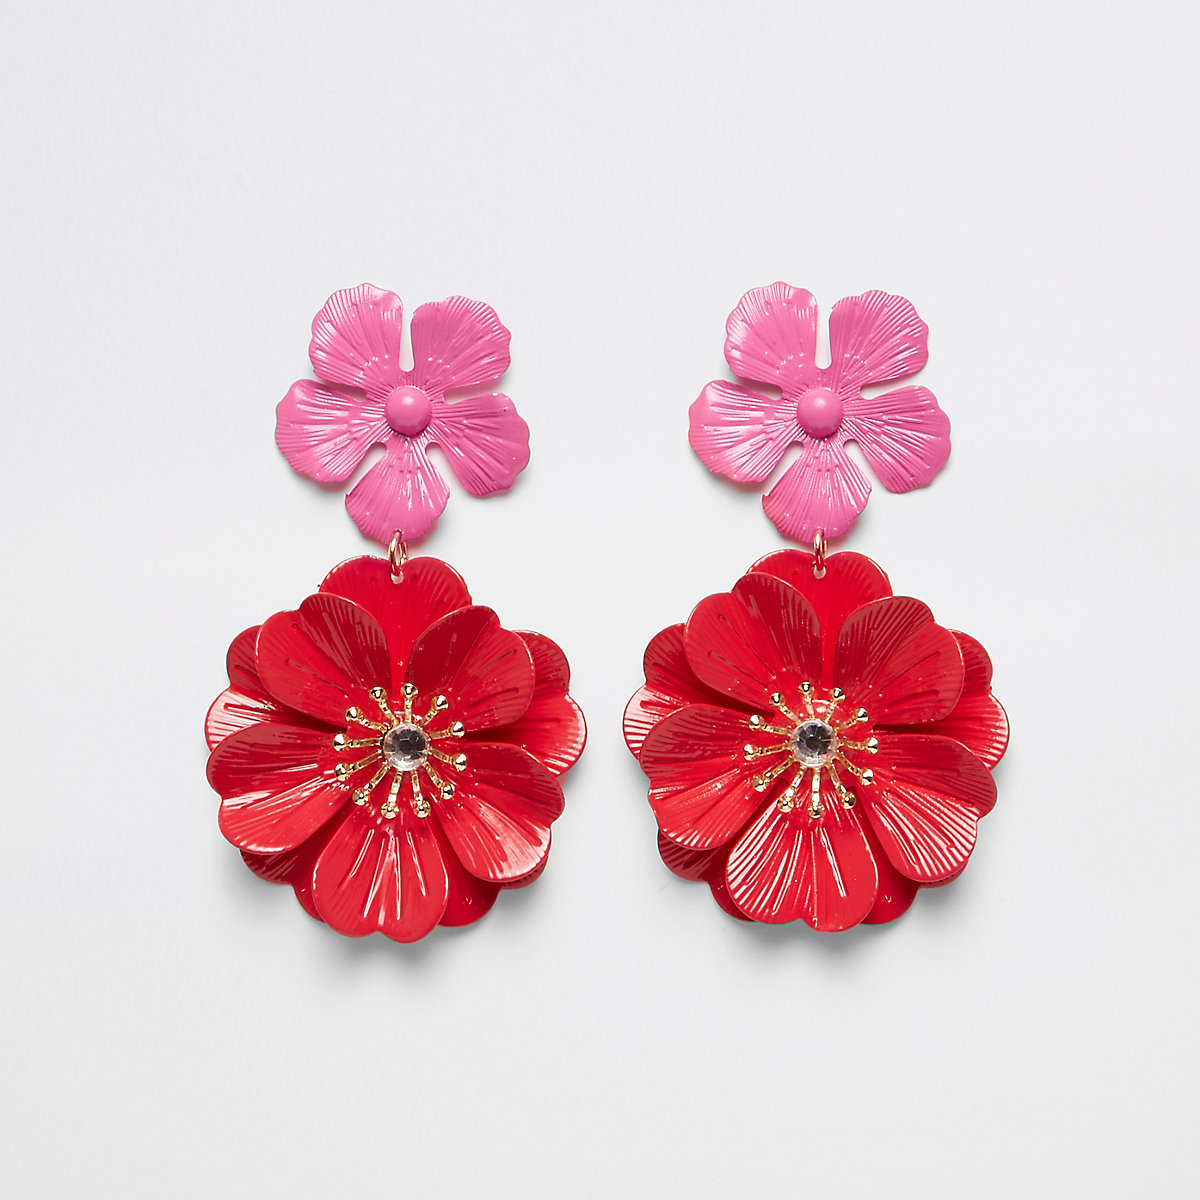 Red double flower stud drop earrings